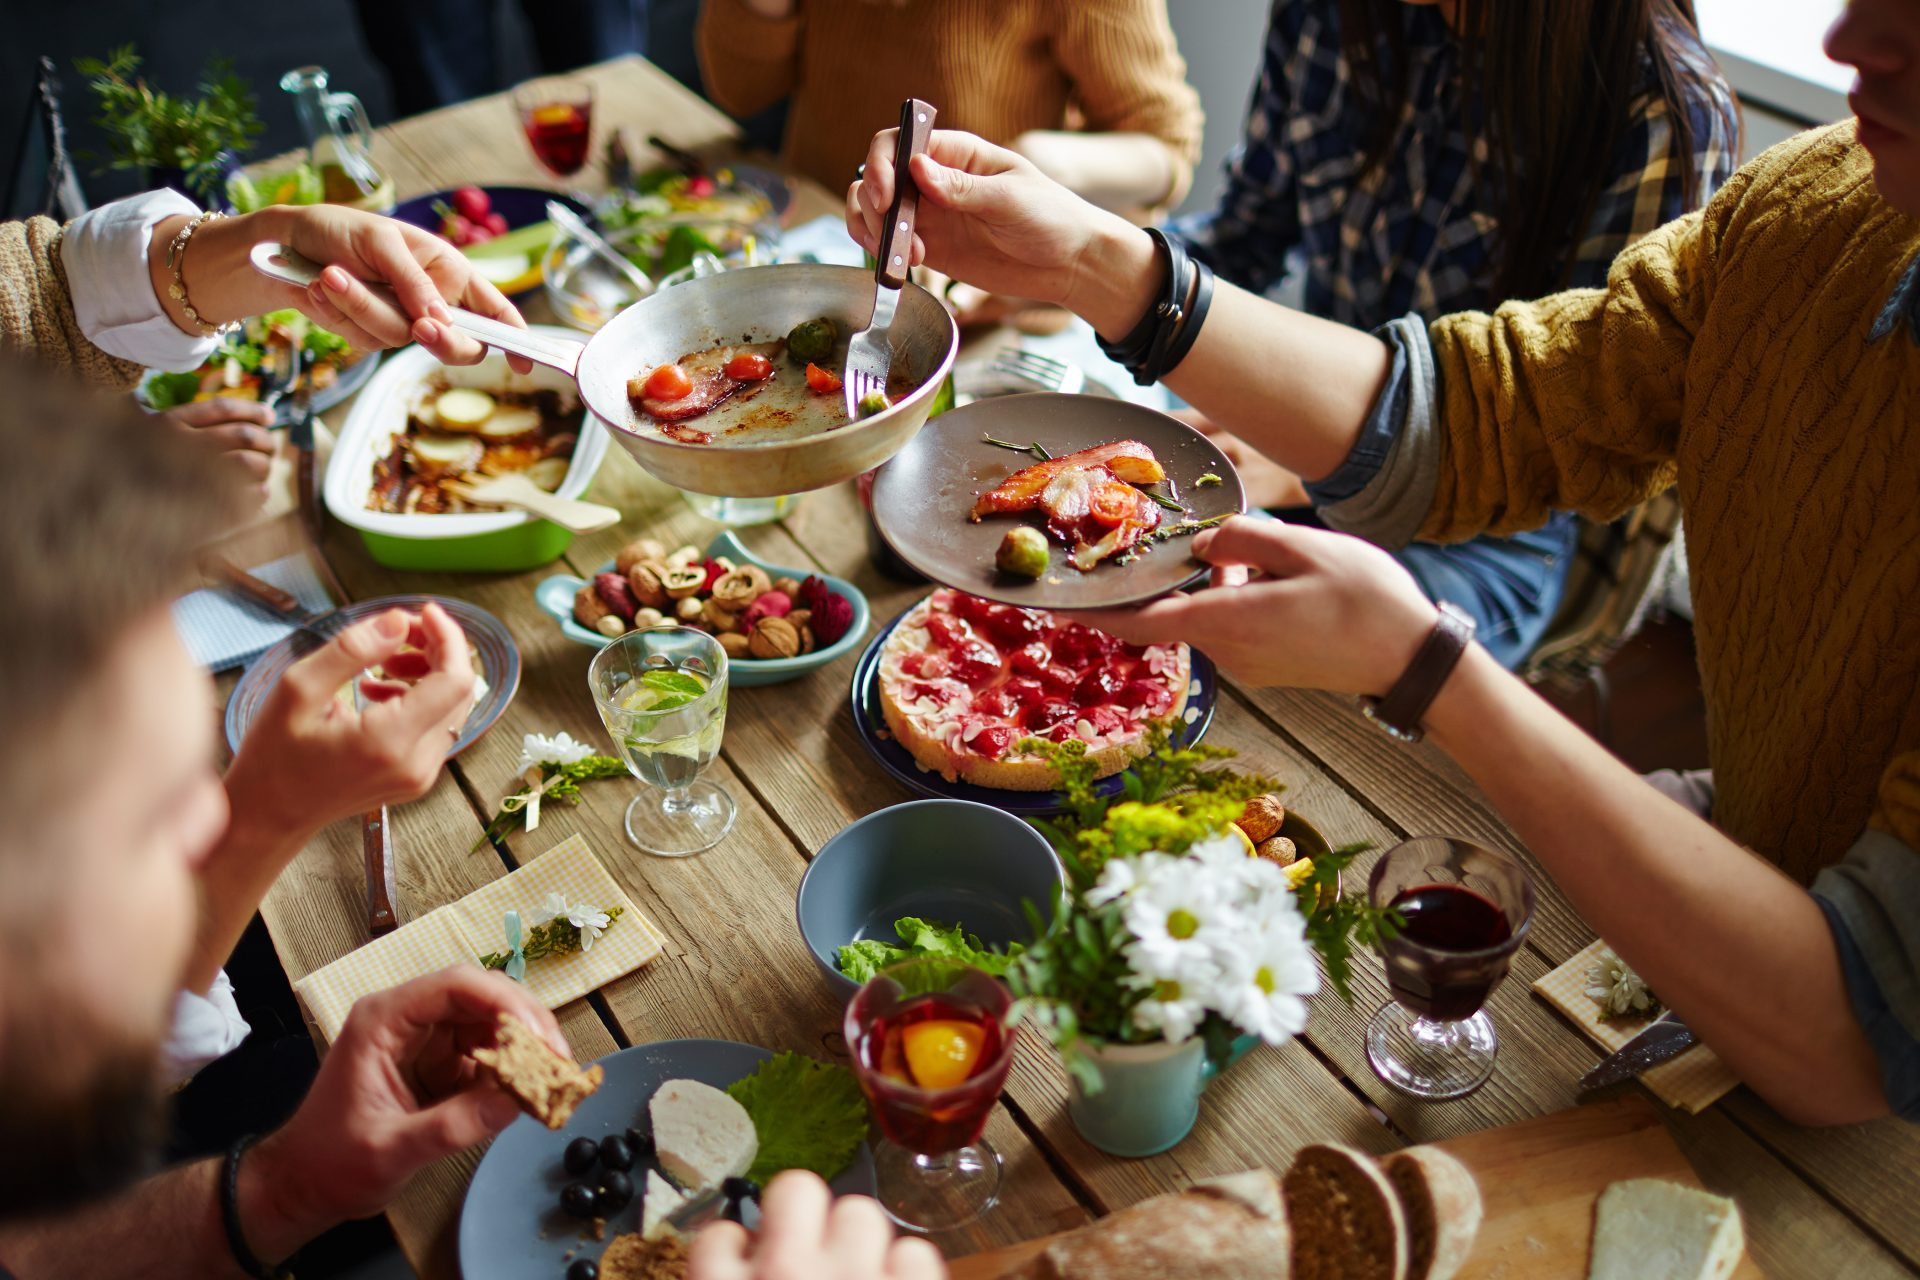 People sitting at dining table eating a family-style dinner